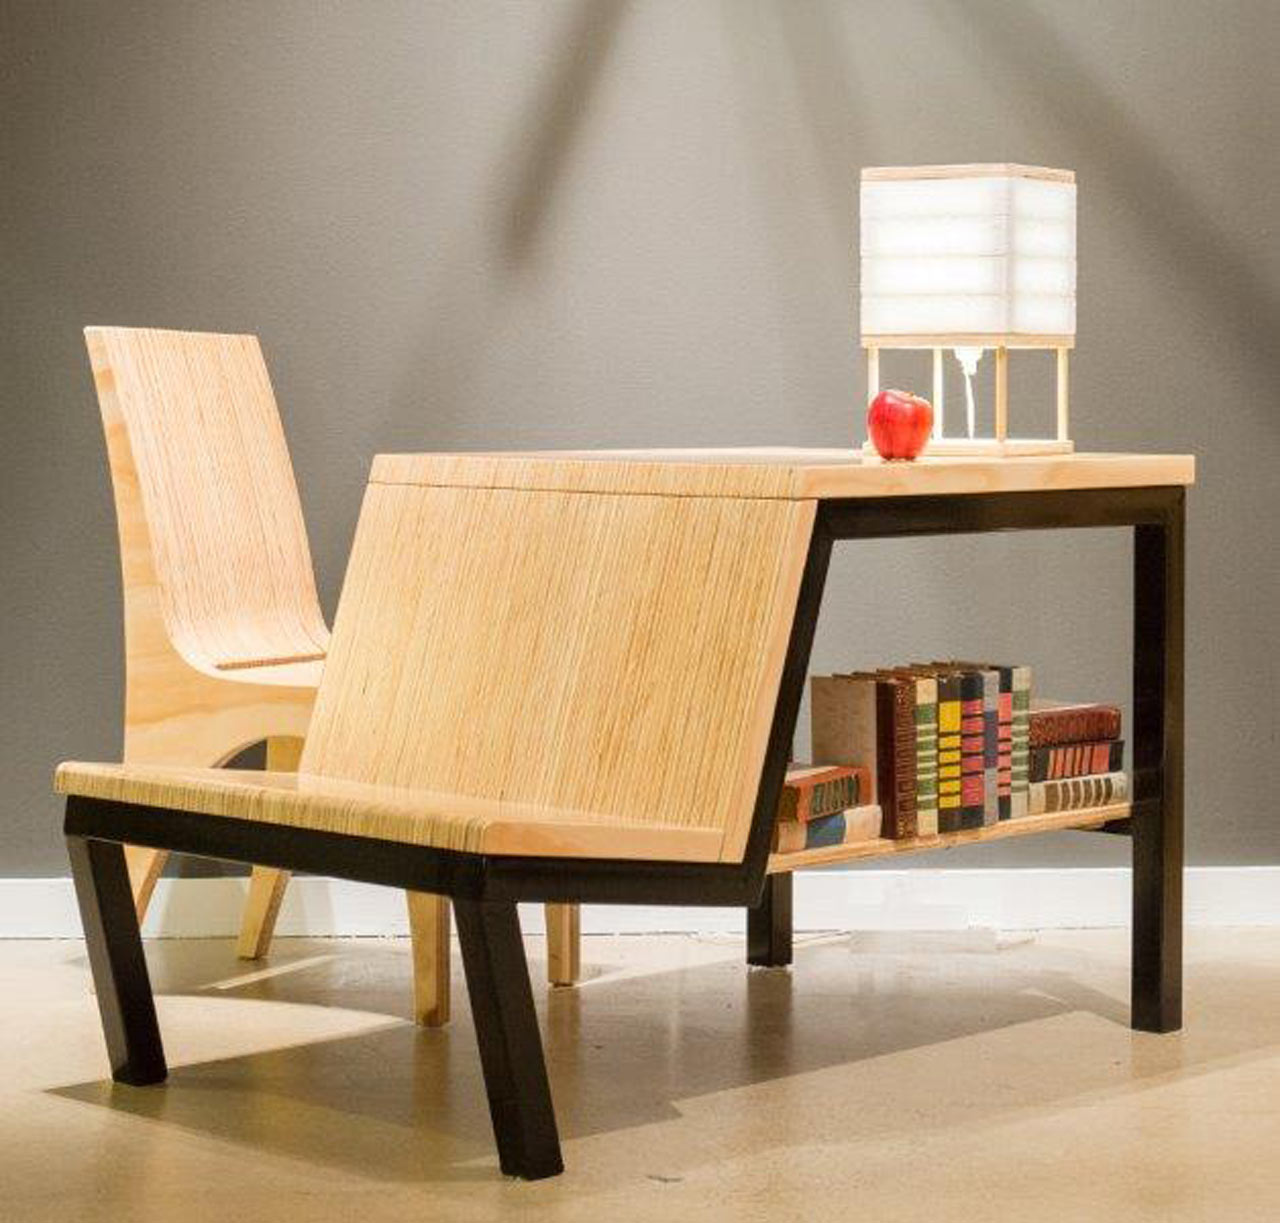 Charmant Multifunctional Desk Turned Dining Table For Small Spaces